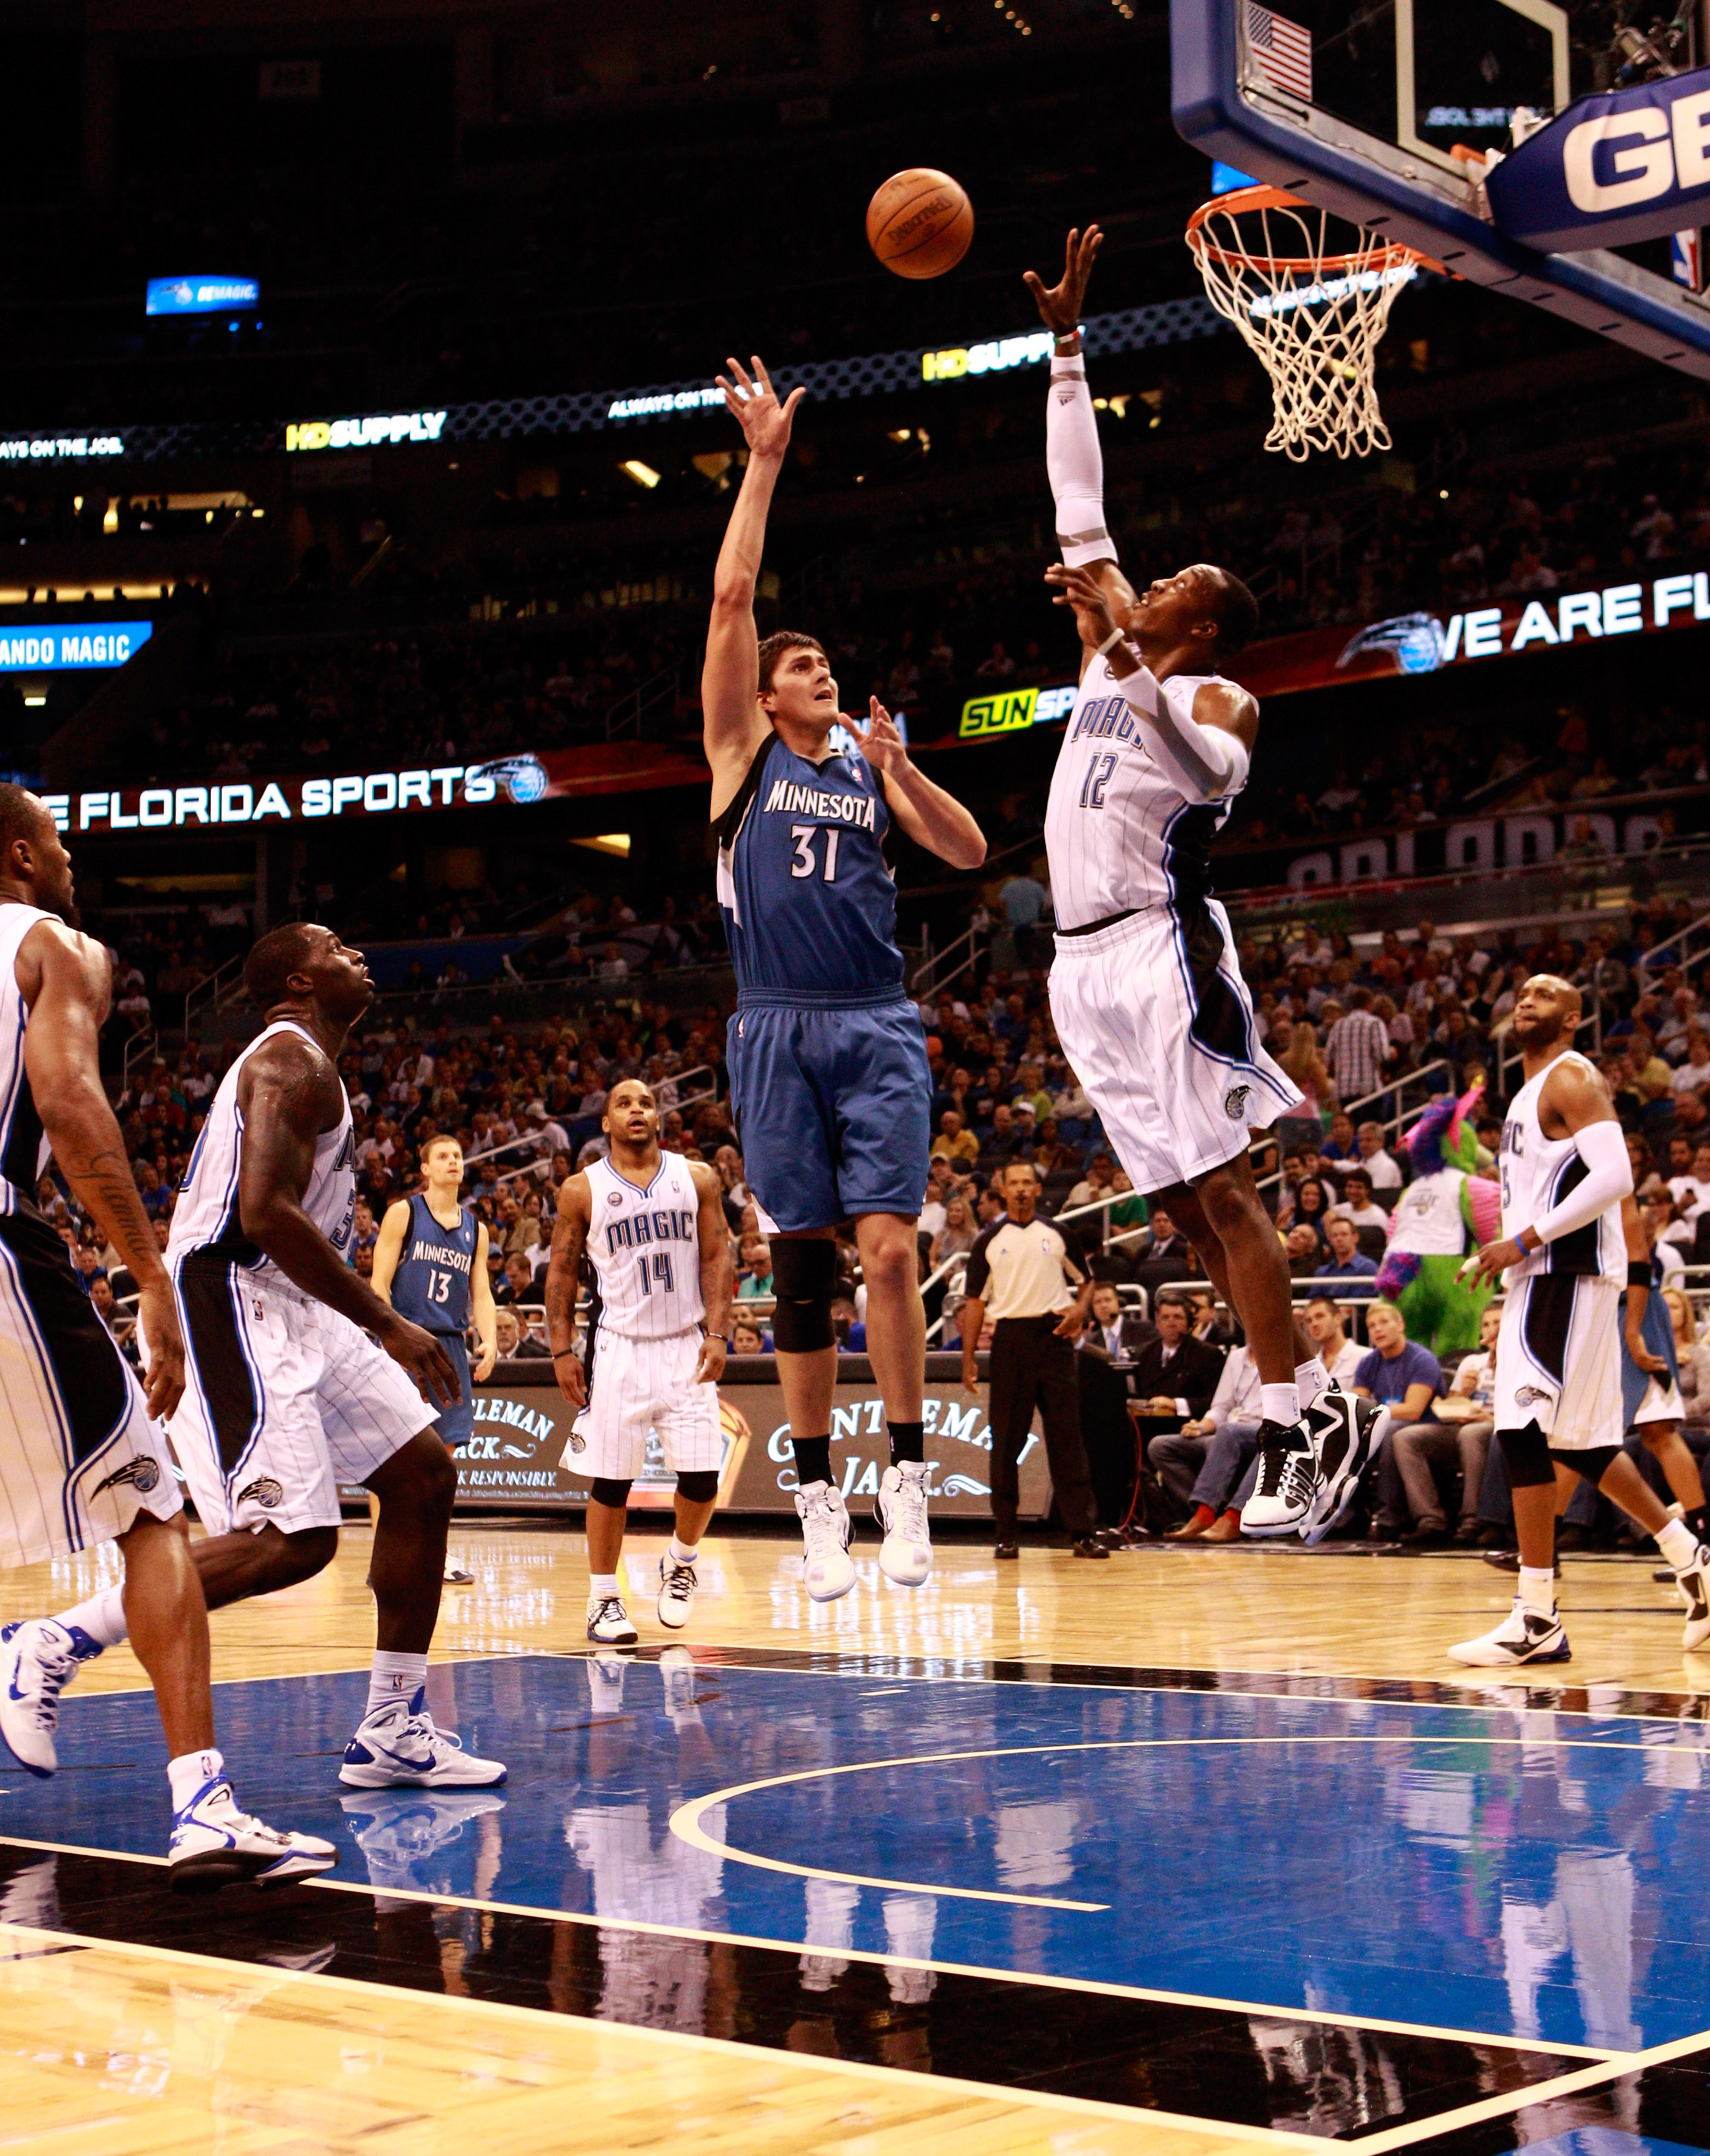 ORLANDO, FL - NOVEMBER 03:  Dwight Howard #12 of the Orlando Magic attempts to block the shot of Darko Milicic #31 of the Minnesota Timberwolves during the game at Amway Arena on November 3, 2010 in Orlando, Florida.  NOTE TO USER: User expressly acknowle